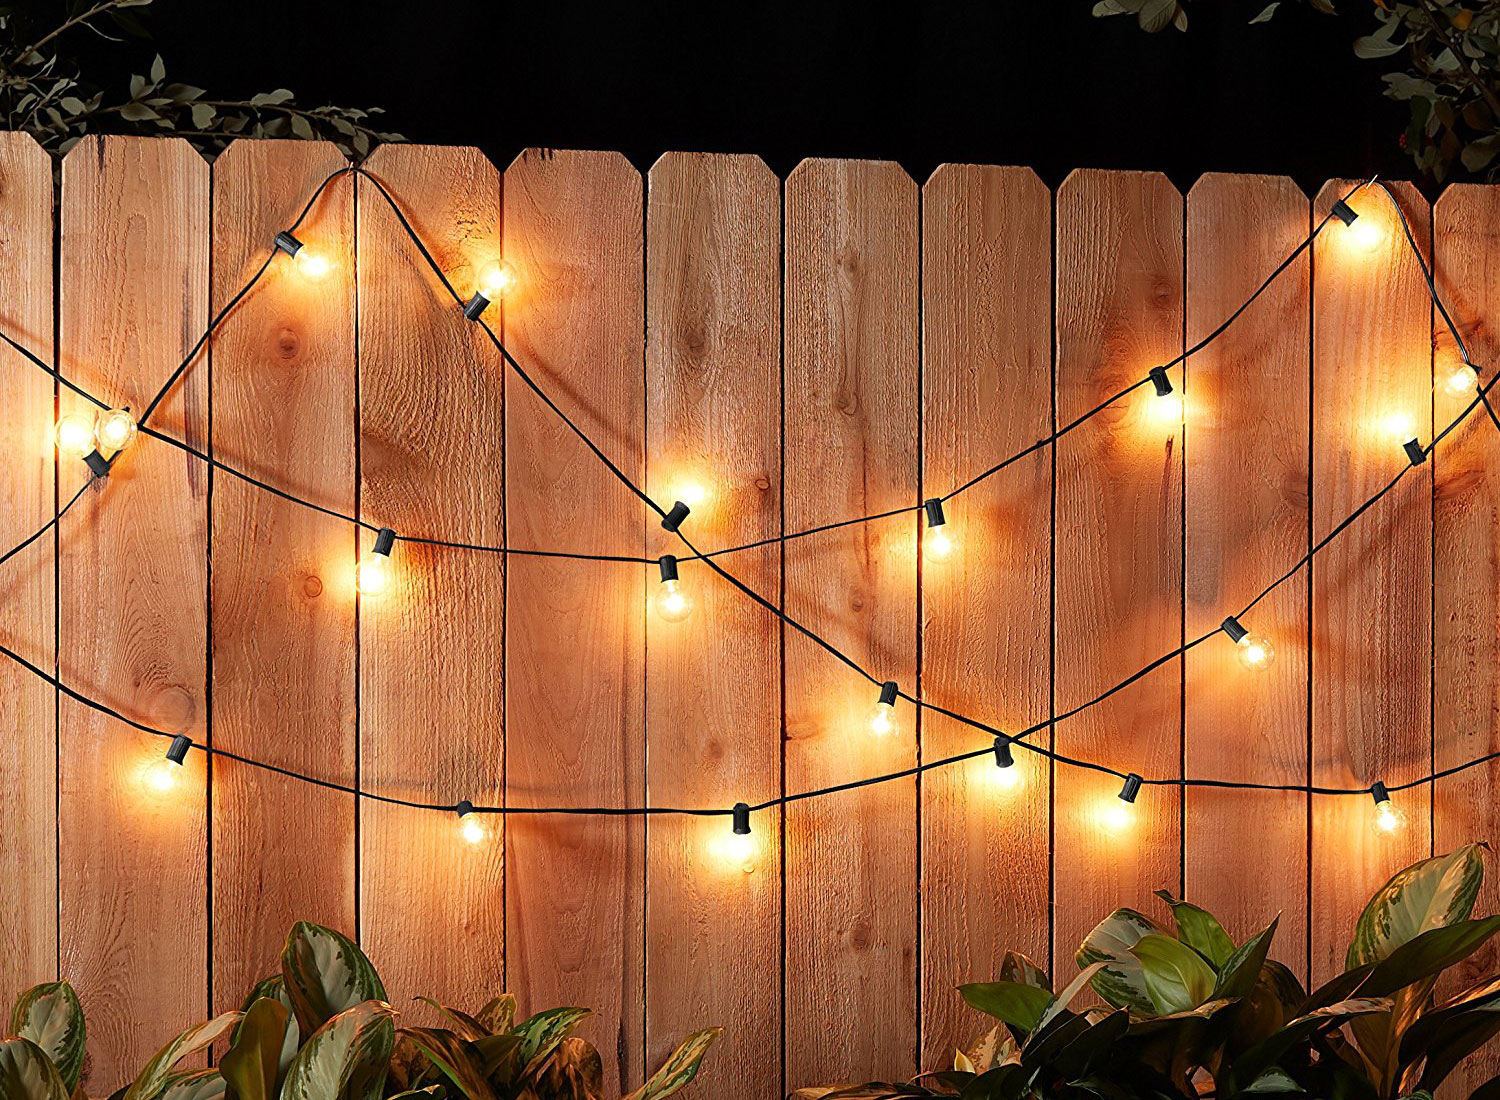 Amazon S String Lights Transform Your Patio Into A Wonderland For 15 Bgr